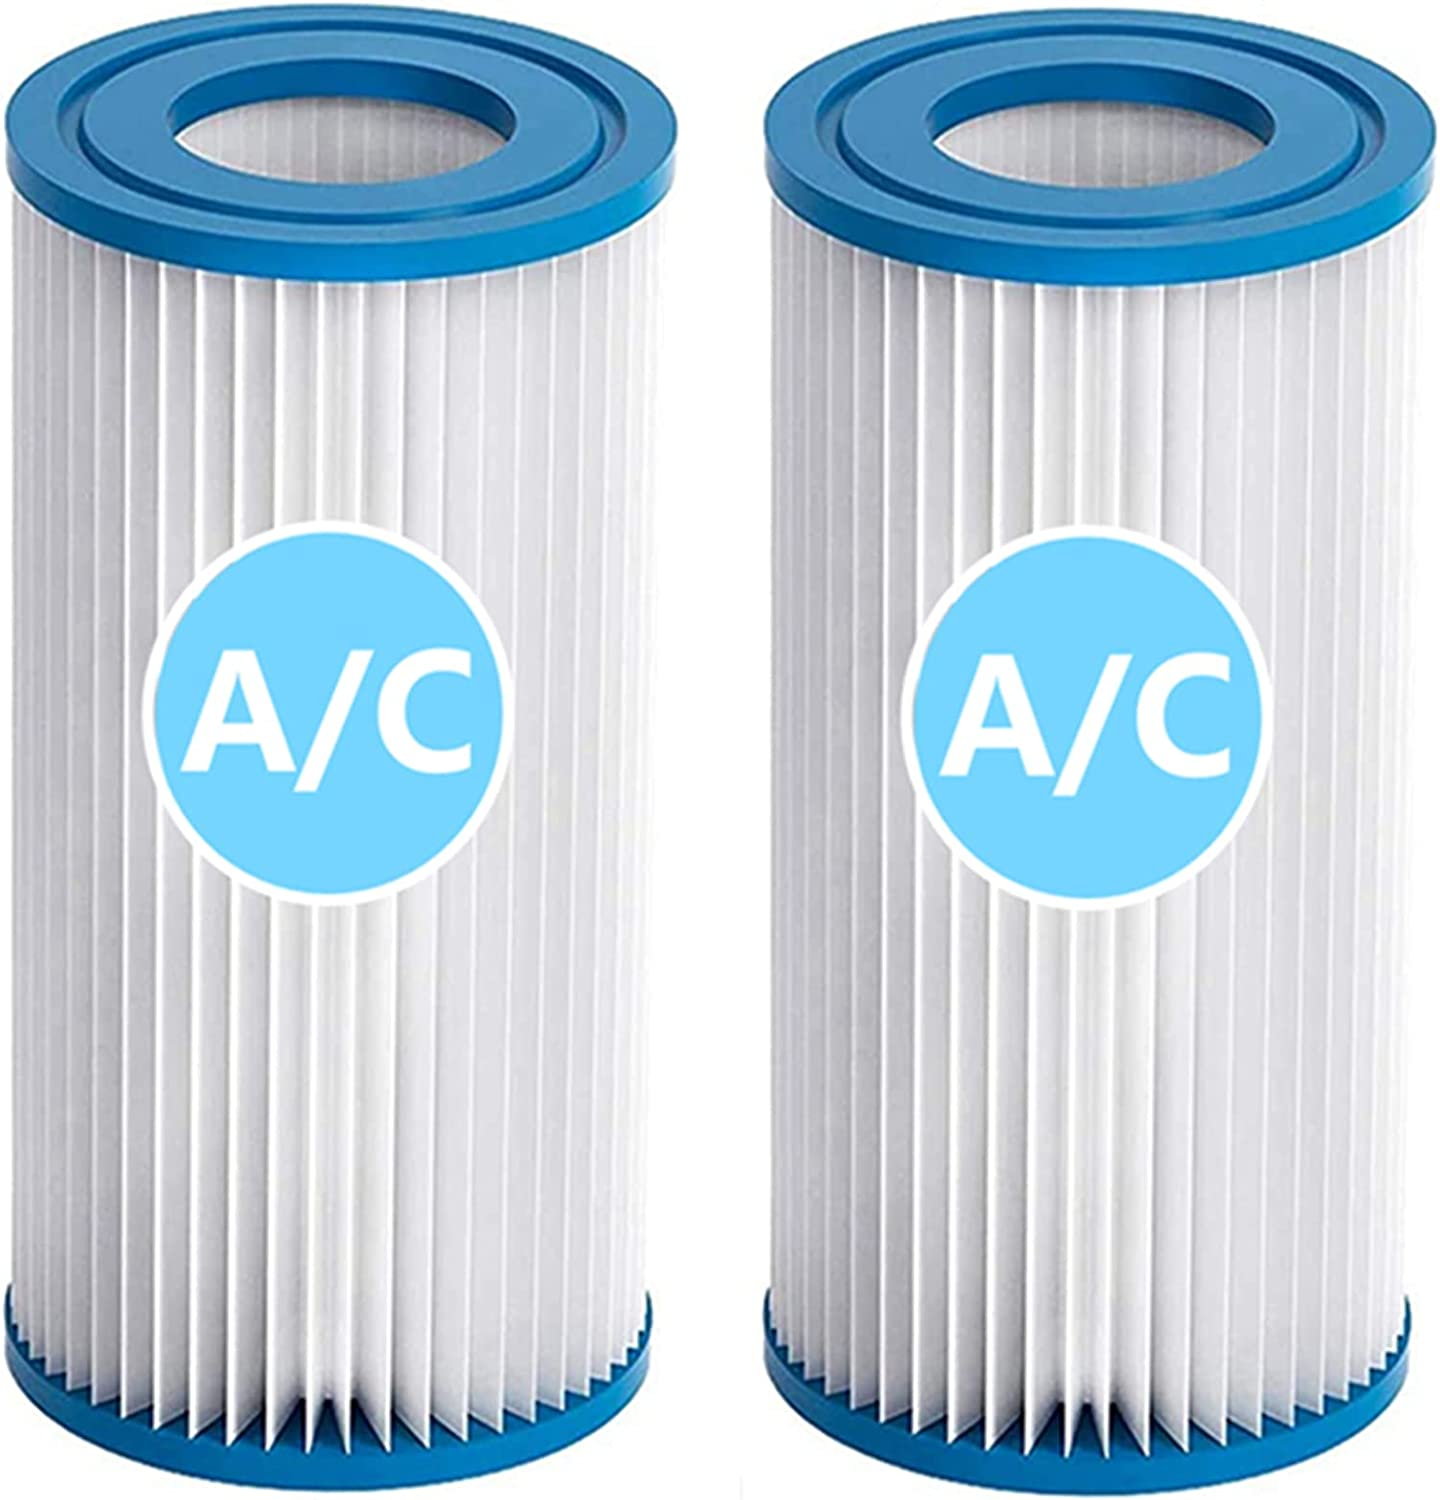 Limited time cheap sale Cicumiu Filter Replacement Cartridge for Intex Bes A C shipfree Type